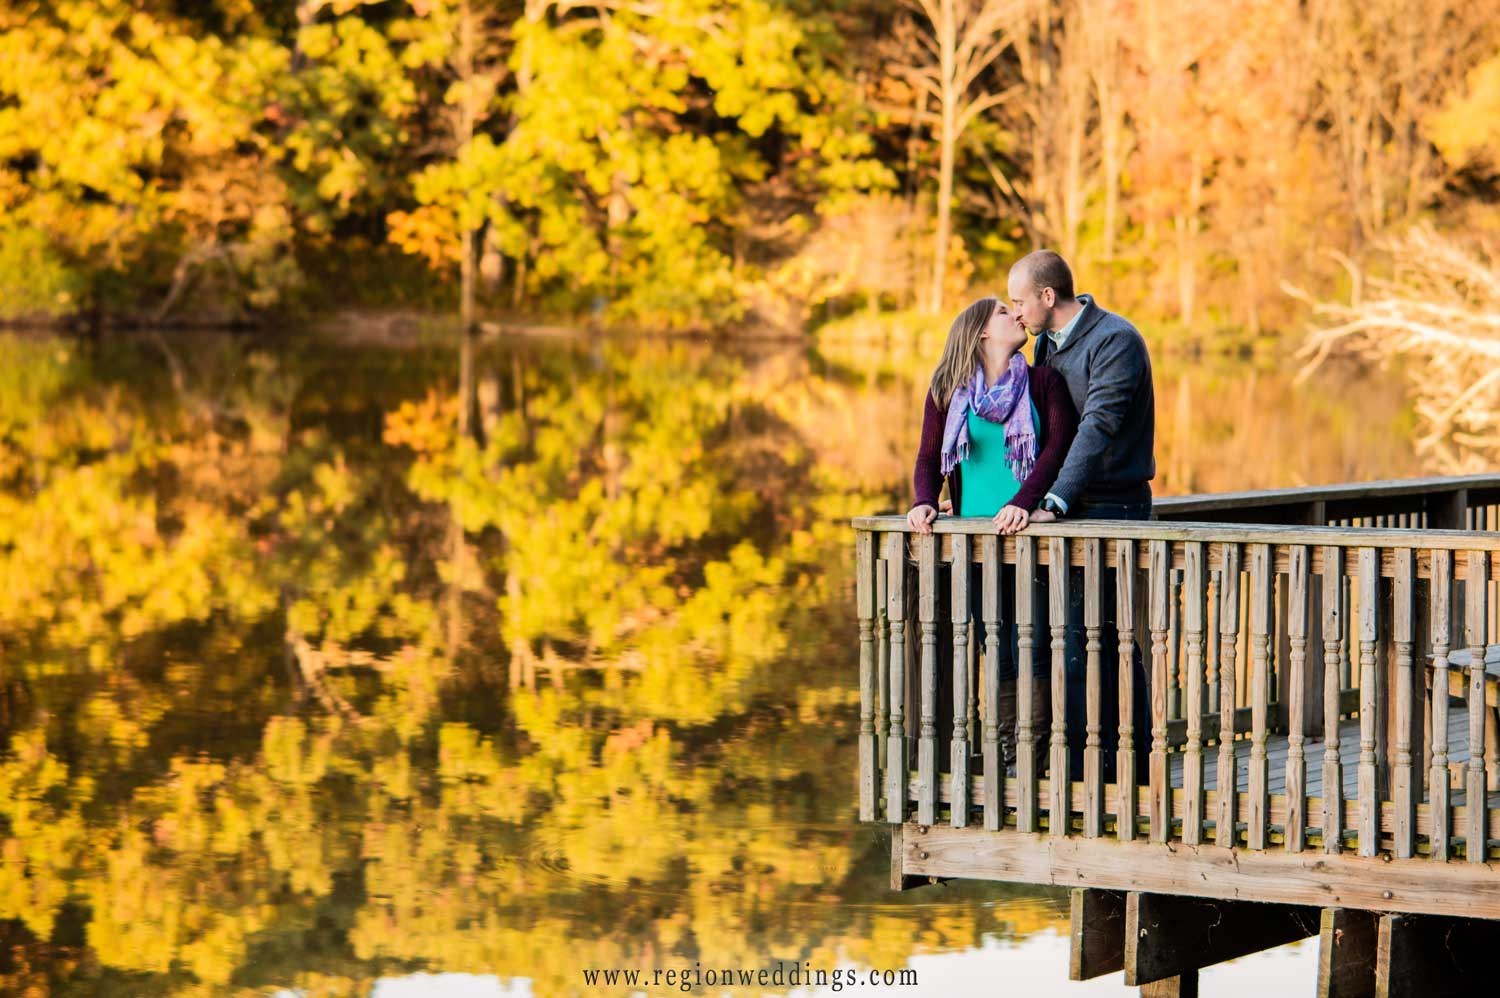 A young couple kisses on the edge of a pier with trees reflecting in the lake.